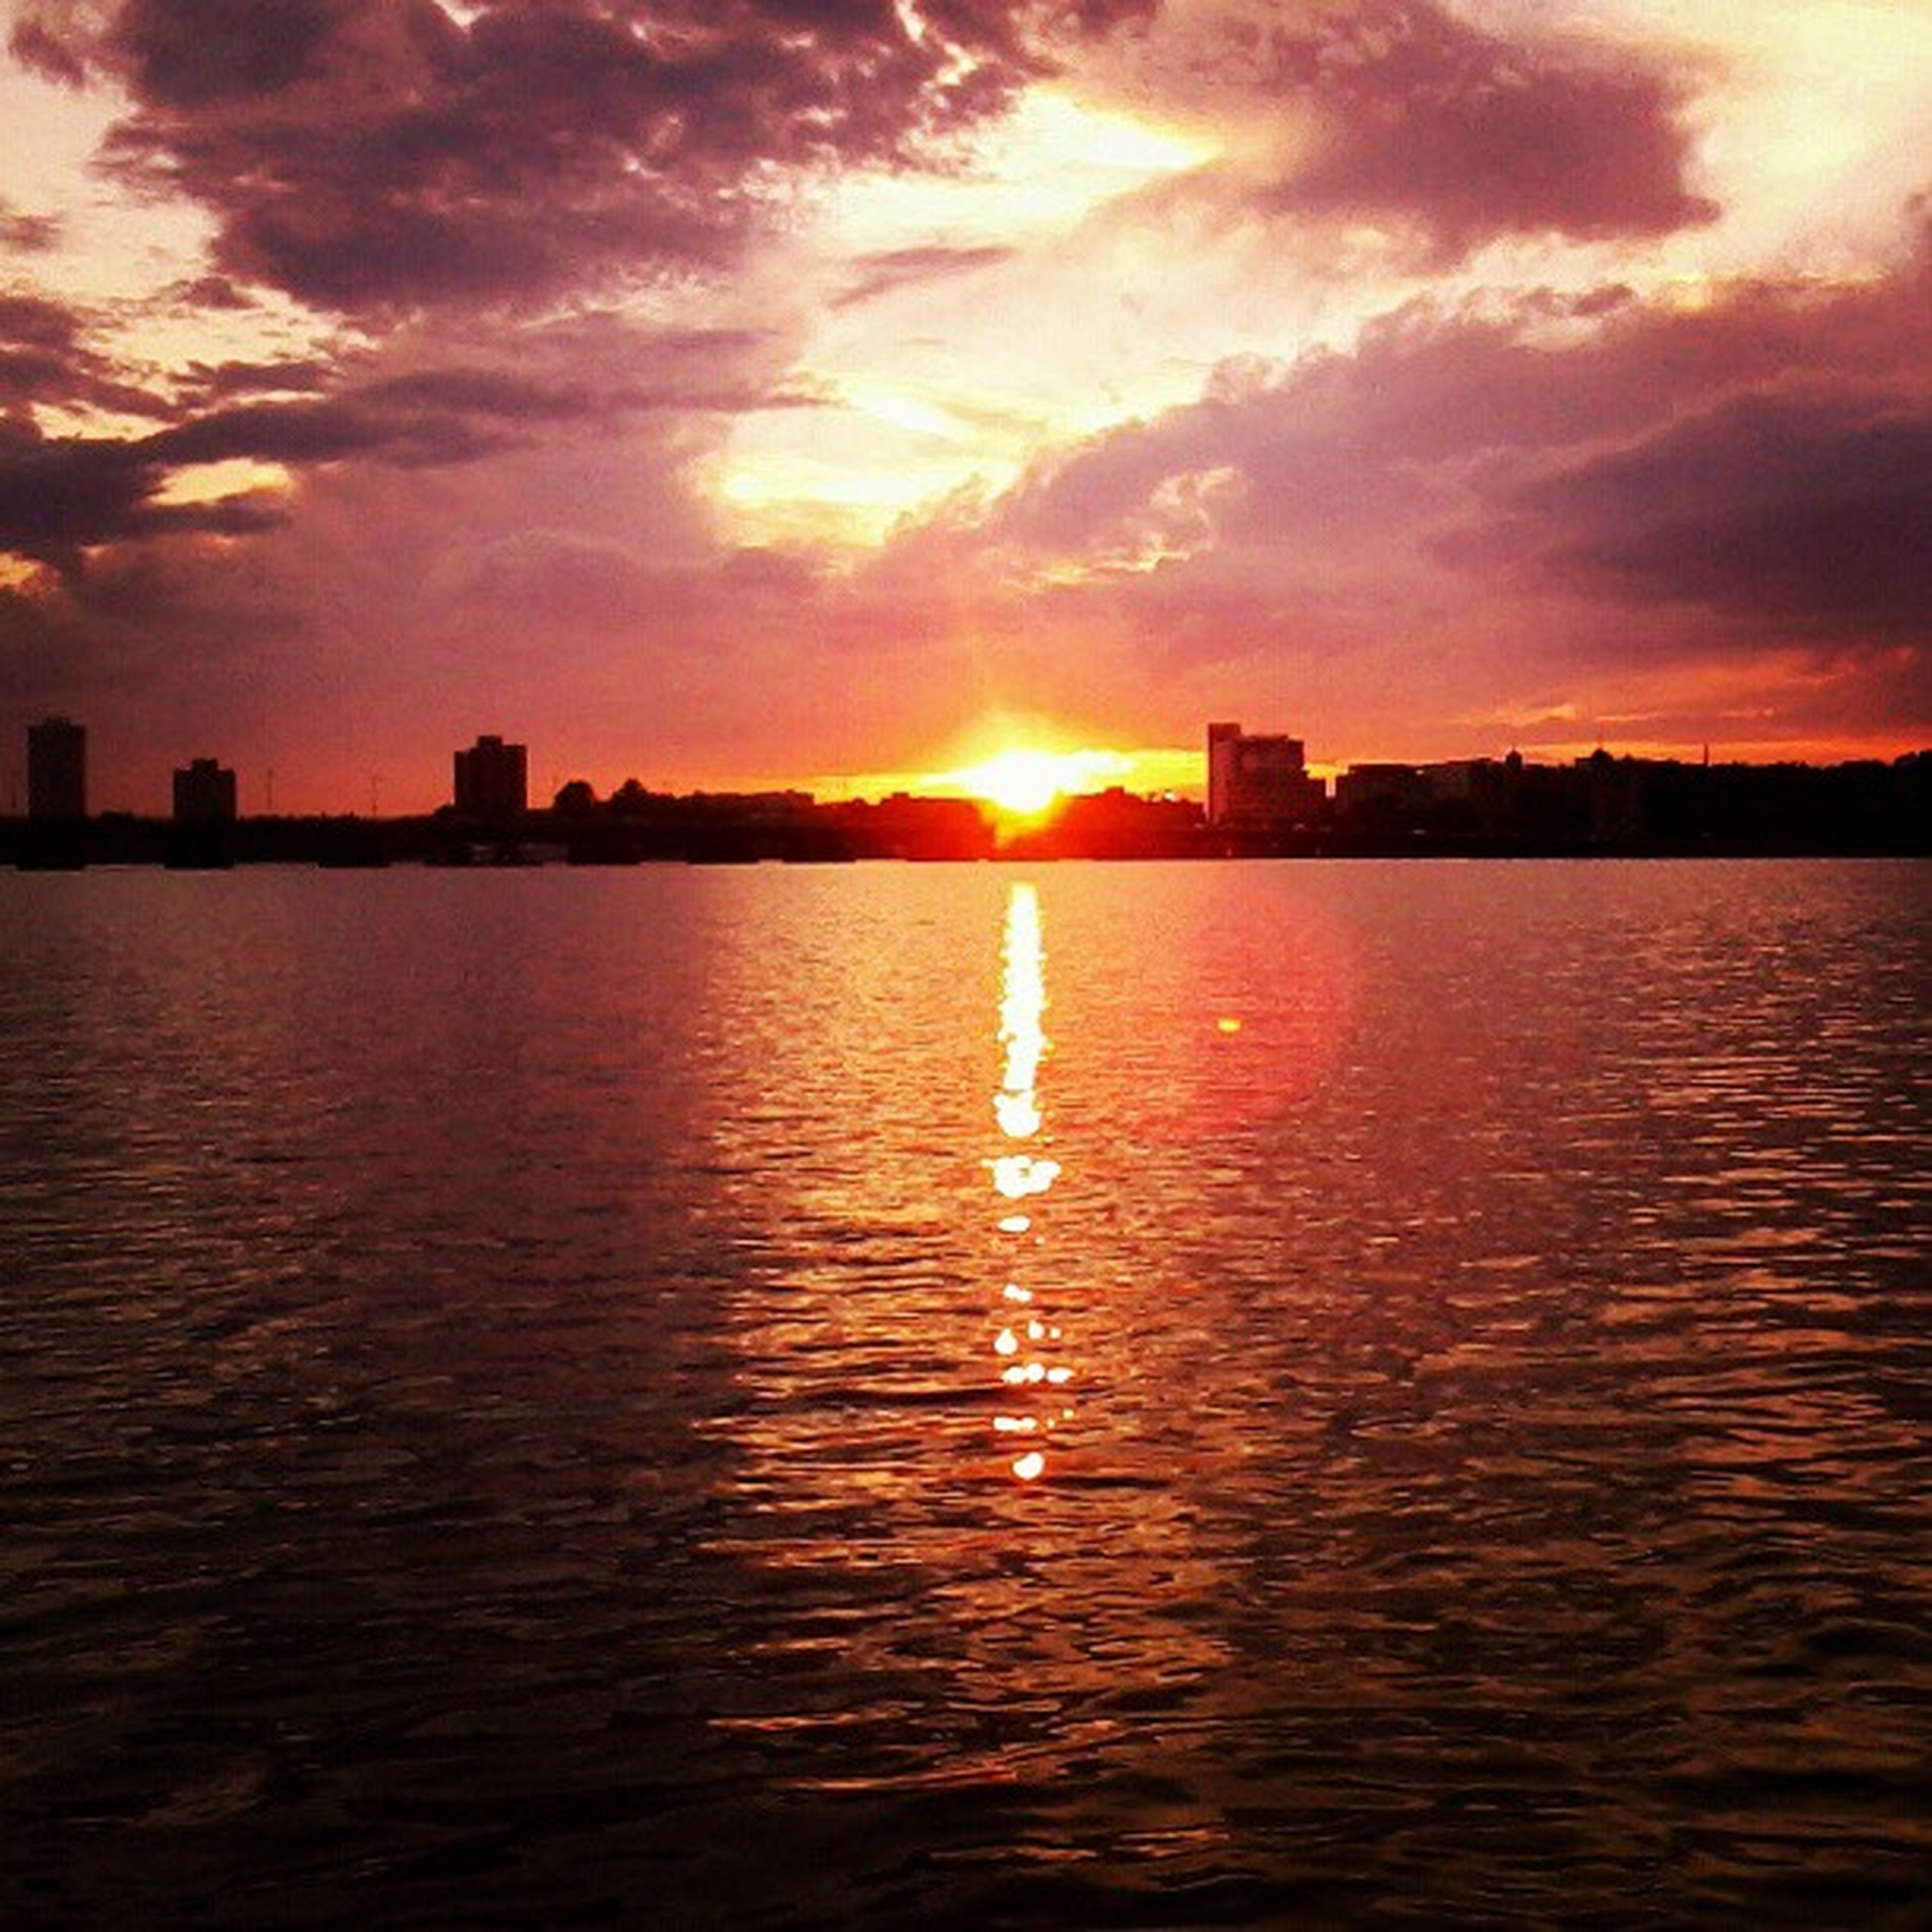 sunset, sun, water, sky, waterfront, reflection, silhouette, building exterior, scenics, orange color, sea, cloud - sky, beauty in nature, sunlight, tranquil scene, architecture, built structure, rippled, tranquility, idyllic